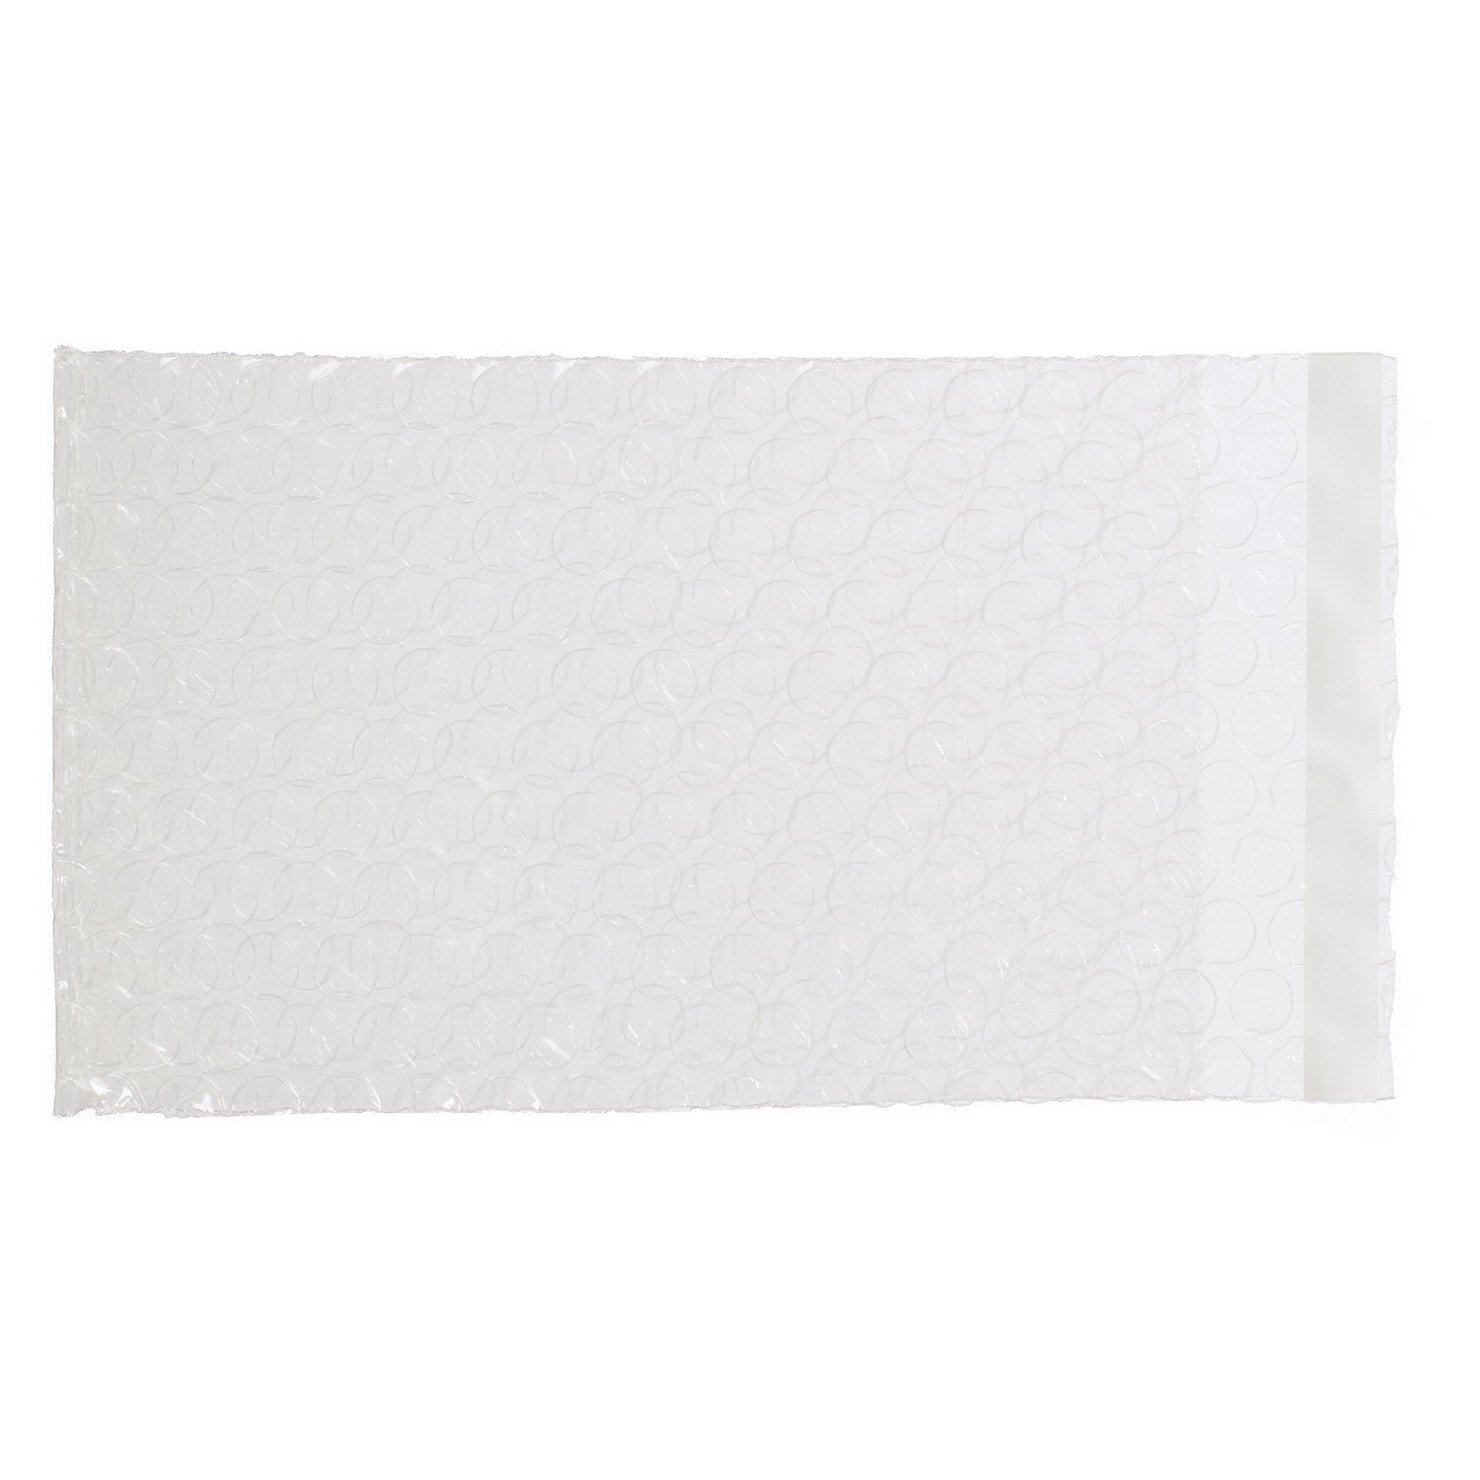 Generic Bubble Bags Smooth on Both Sides Self Sealing 4.5'' x 7''+1'' Pack of 100pcs